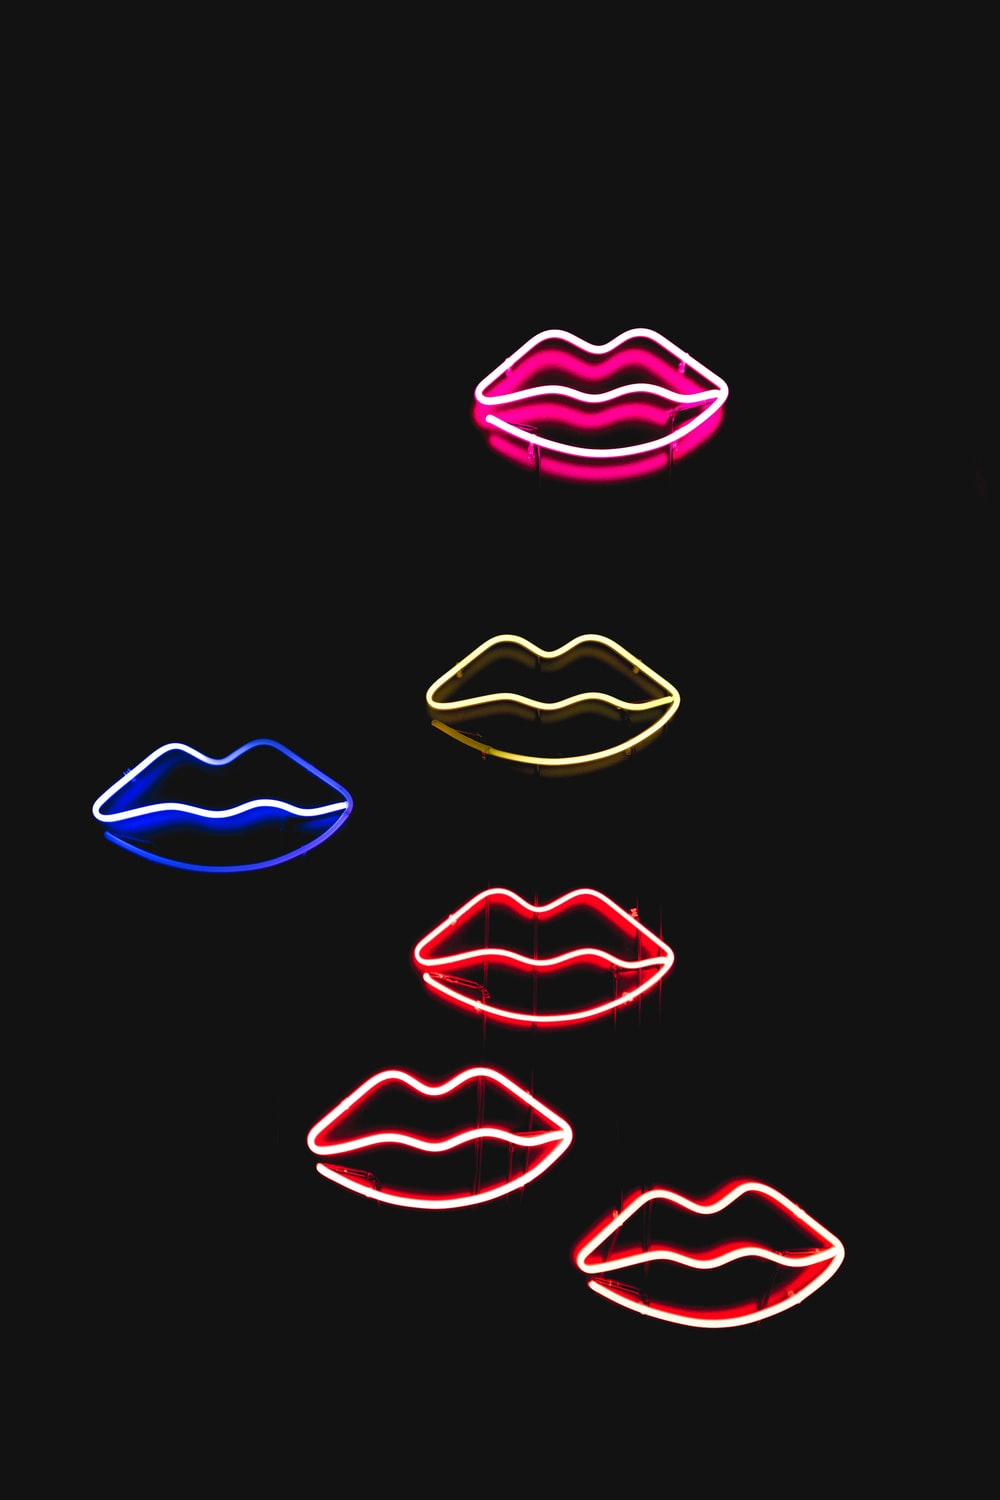 six assorted-colored lips illustrations